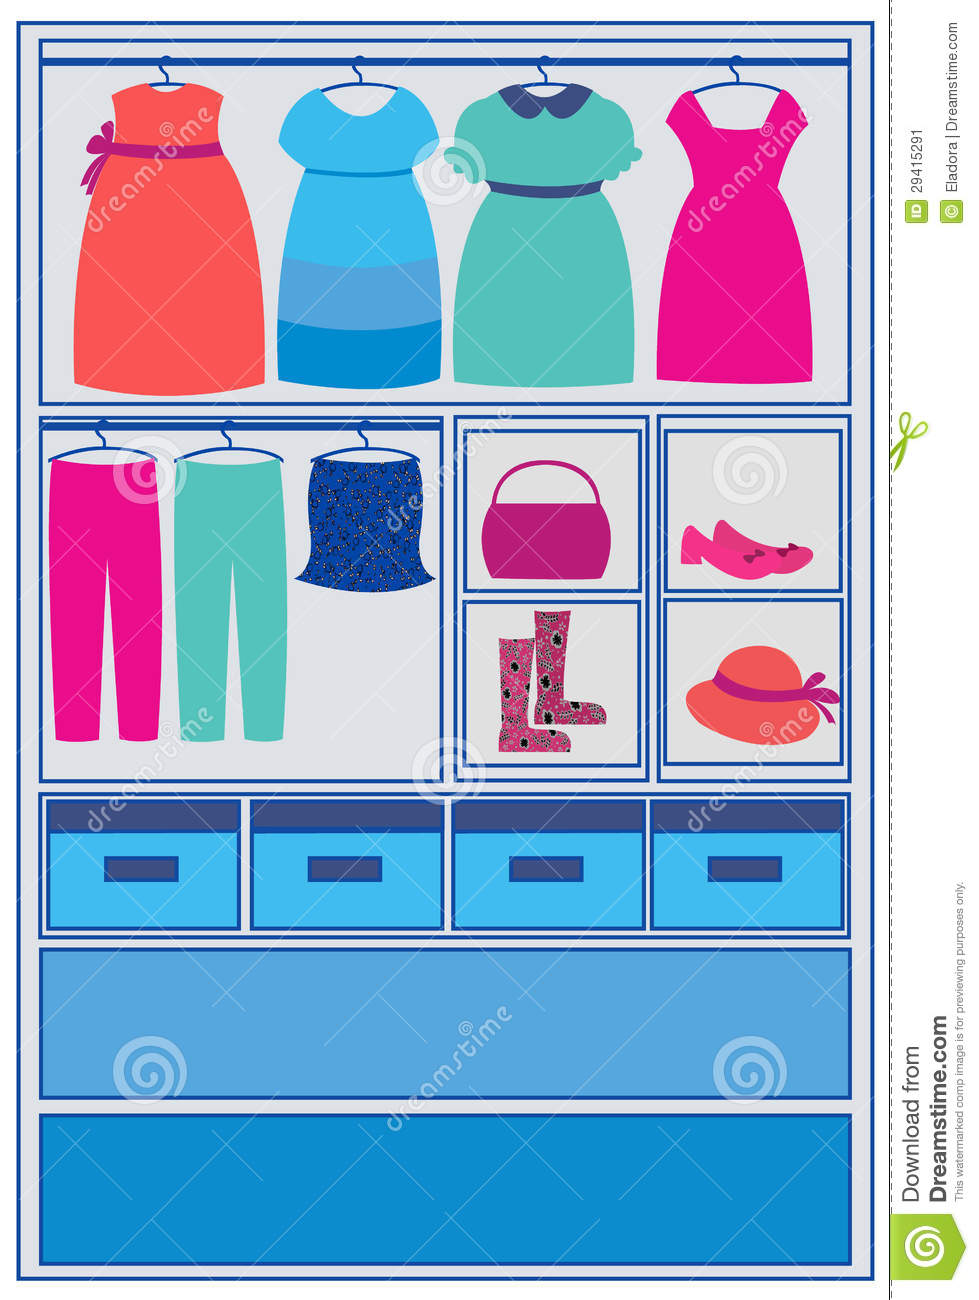 tidy closet wardrobe, dresses, shoes and boxes vector.